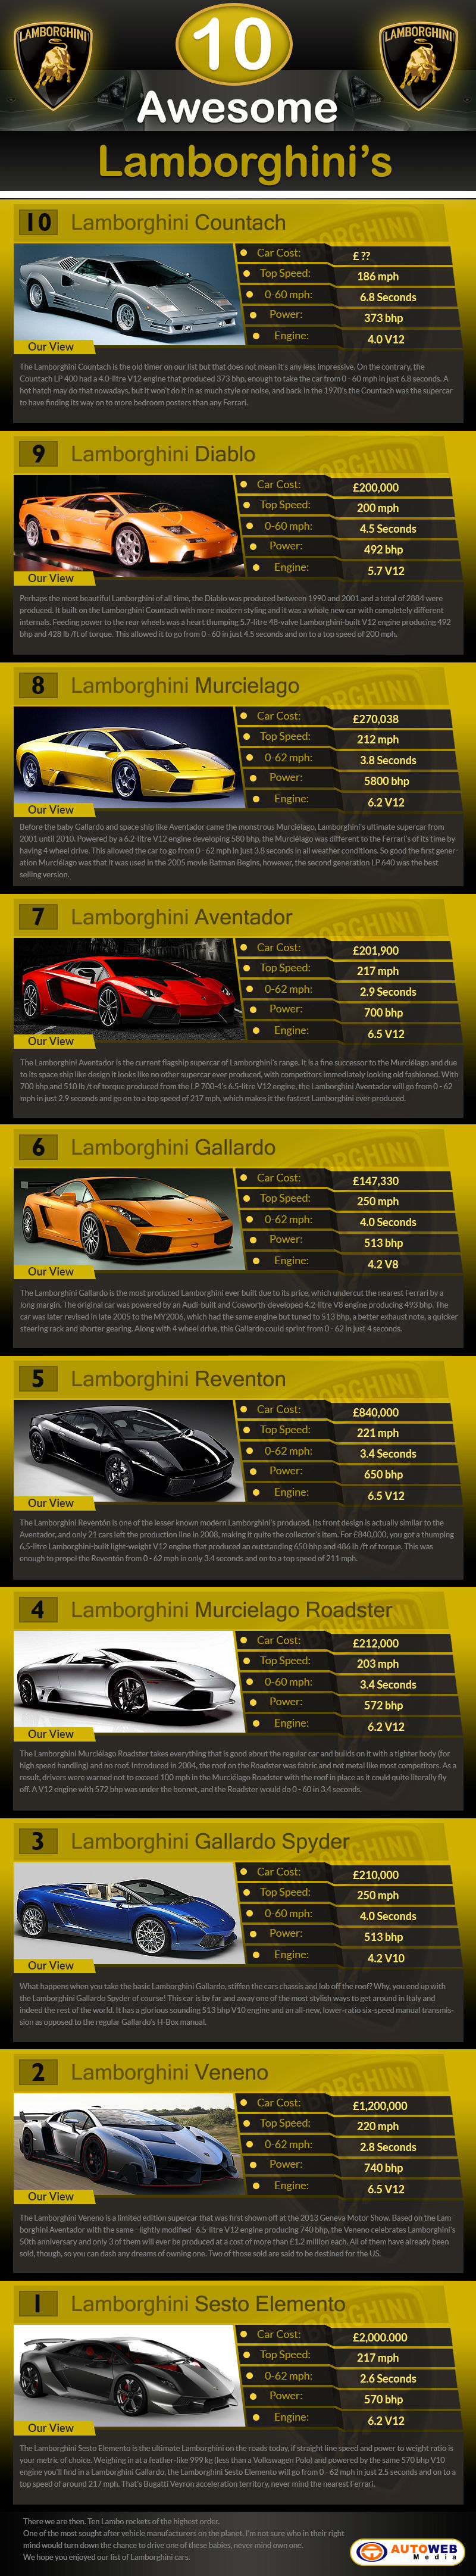 Lamborghini-Sports-Cars